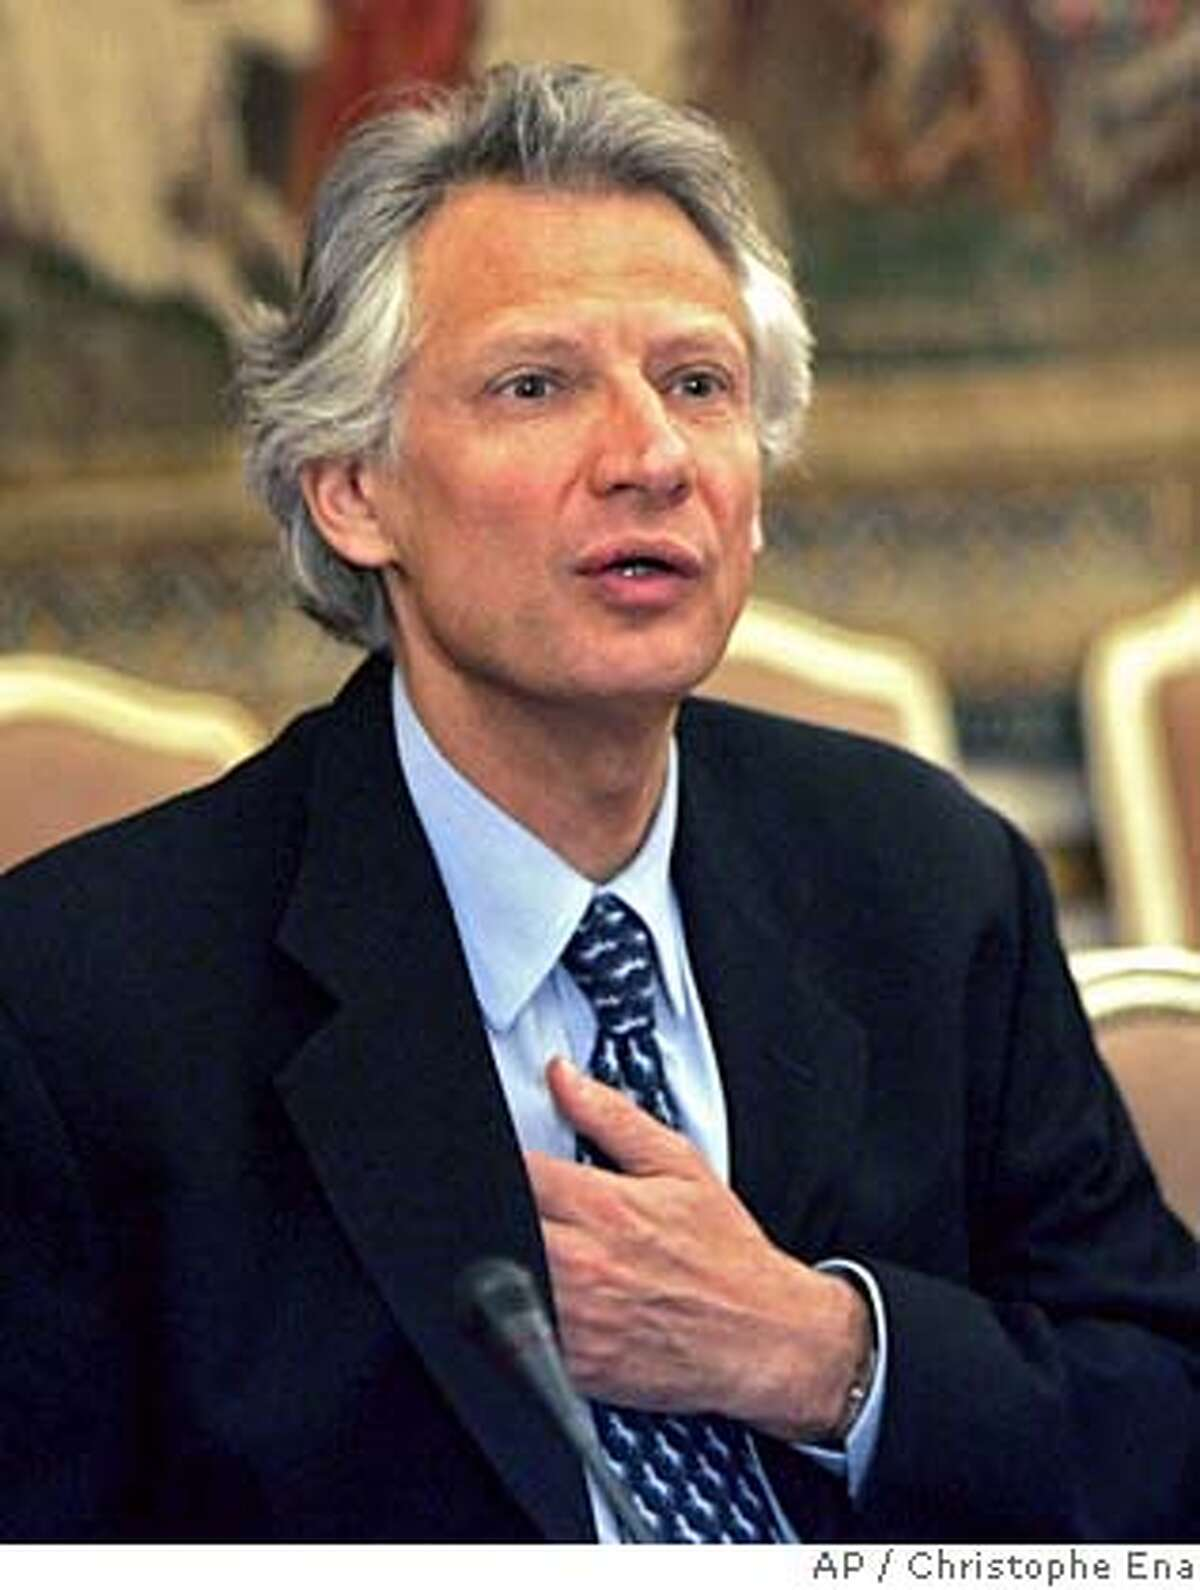 French Prime Minister Dominique De Villepin before a meeting with university presidents in Paris, France, Friday, March 17, 2006. Following violent student protests this week in Paris, Villepin appealed for calm before the students' final exam period. (AP Photo/Christophe Ena)